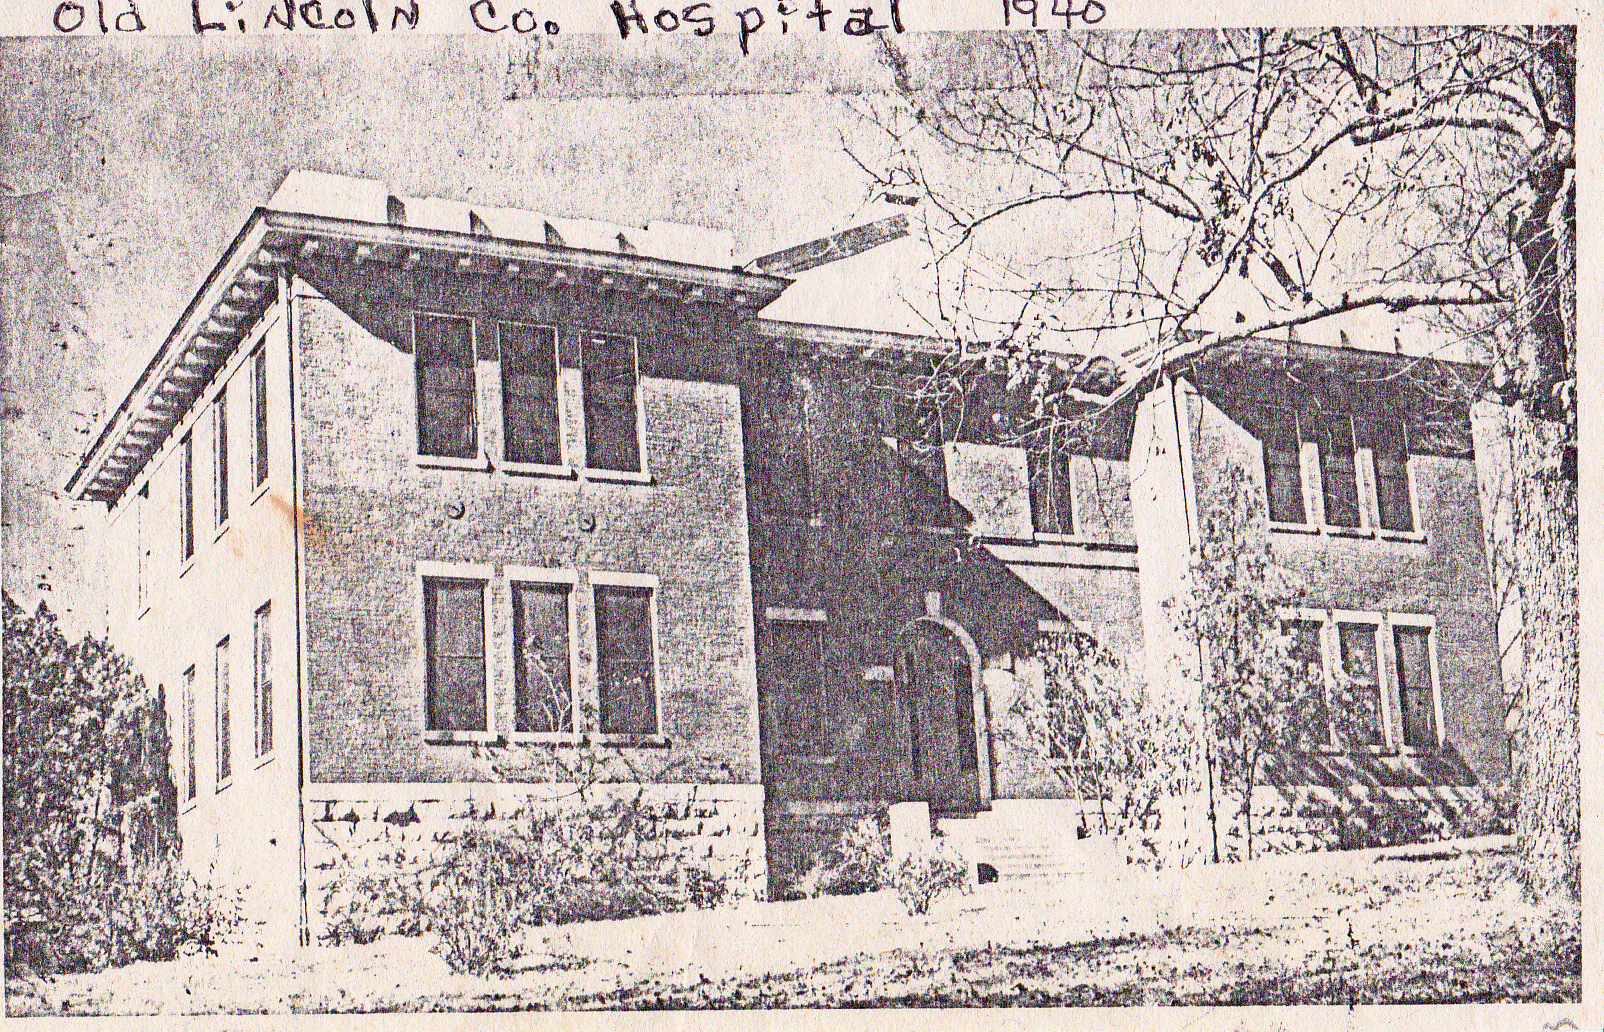 old-hospital-pictures_0009-2